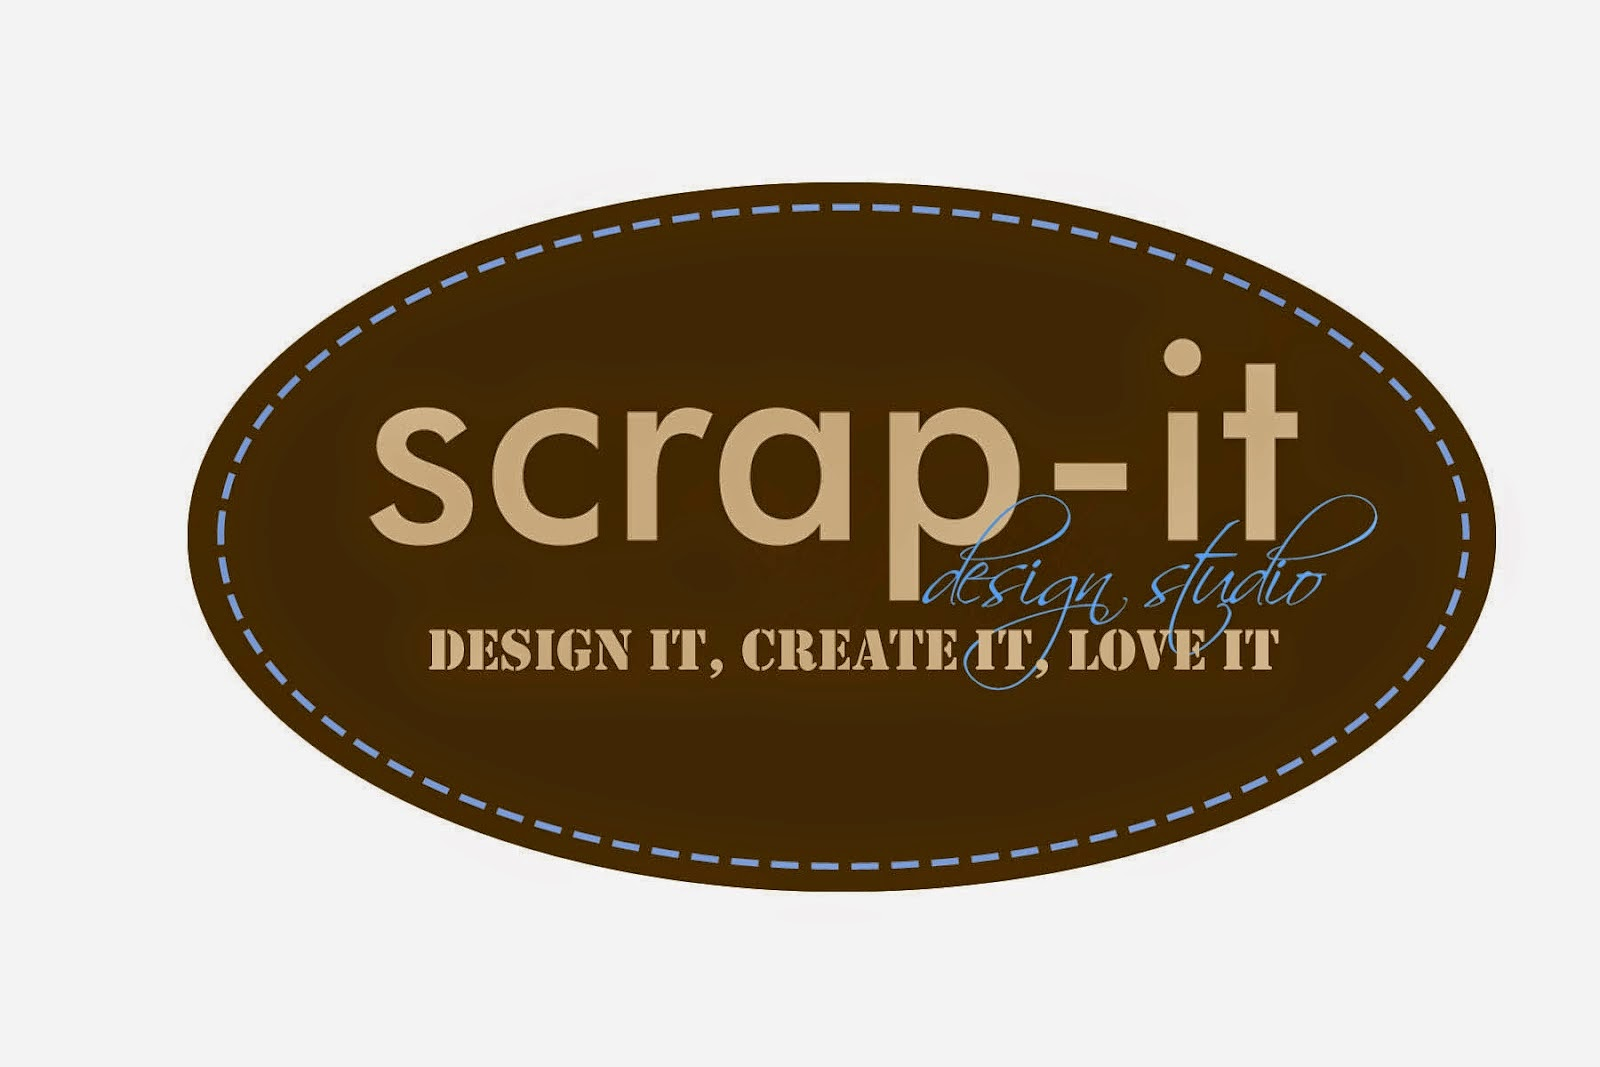 Scrap-It Design Studio